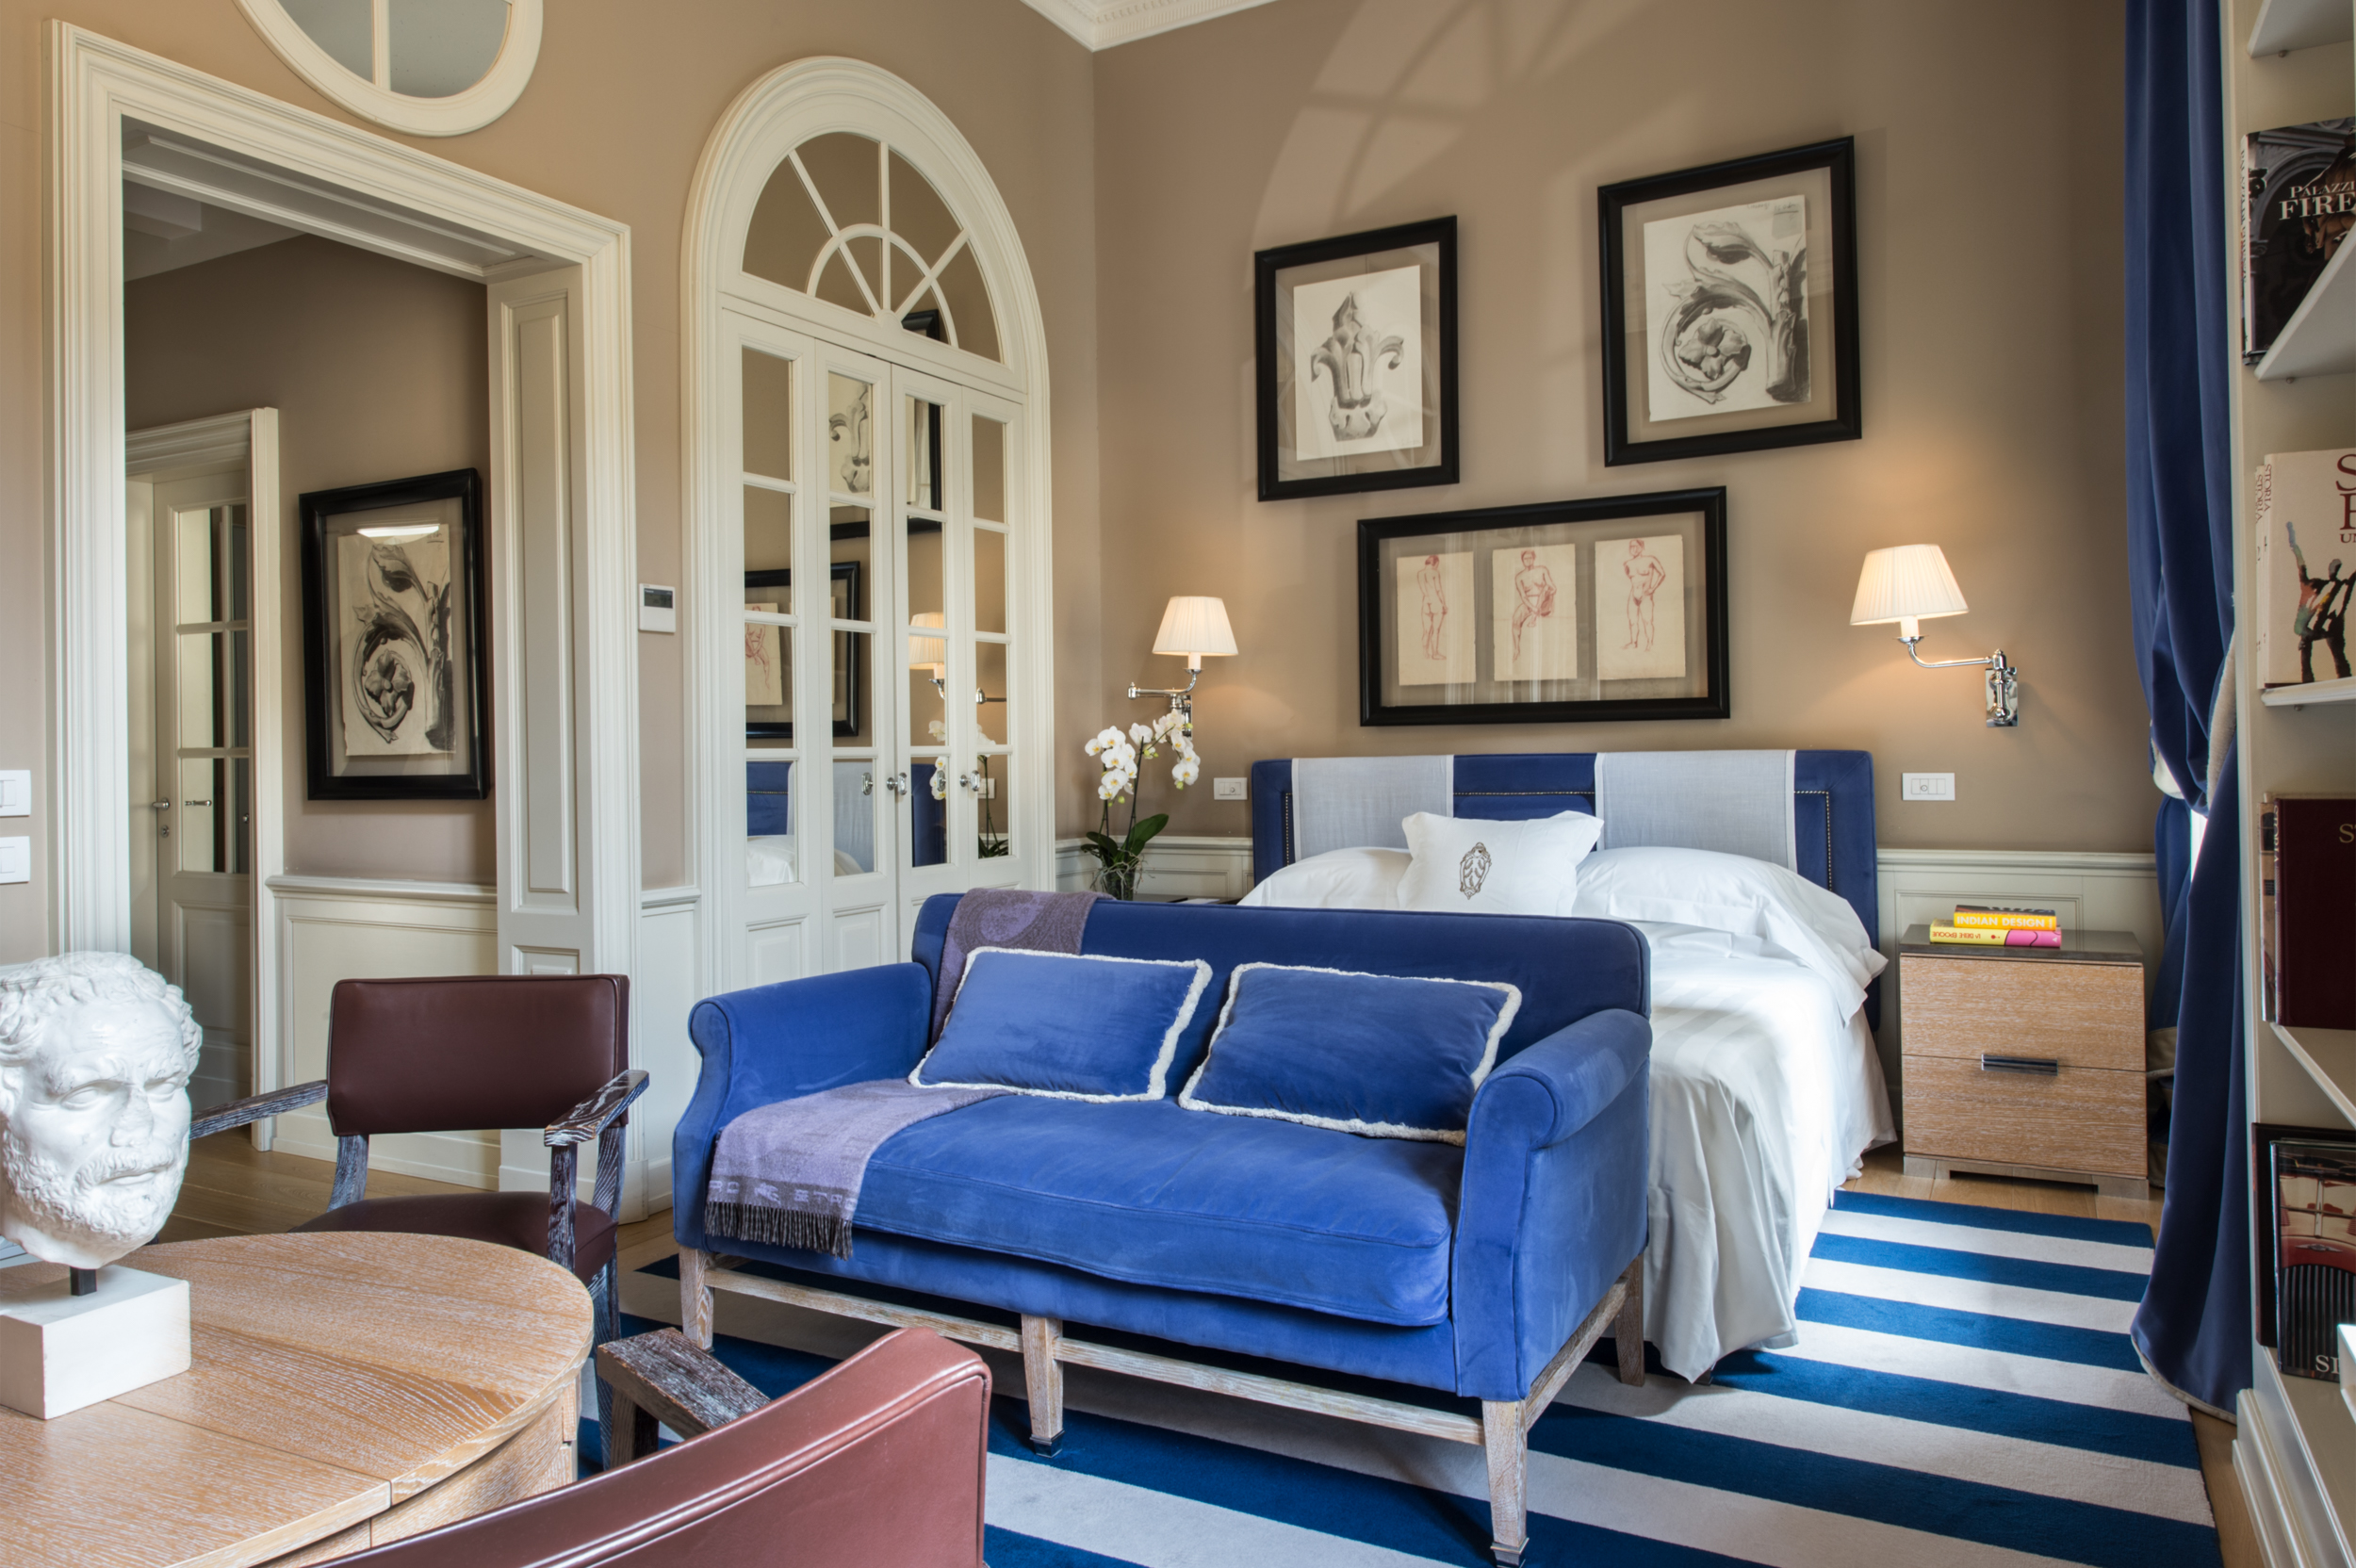 Above: Palazzo Vechietti | 14 Rooms from £396 per night including breakfast